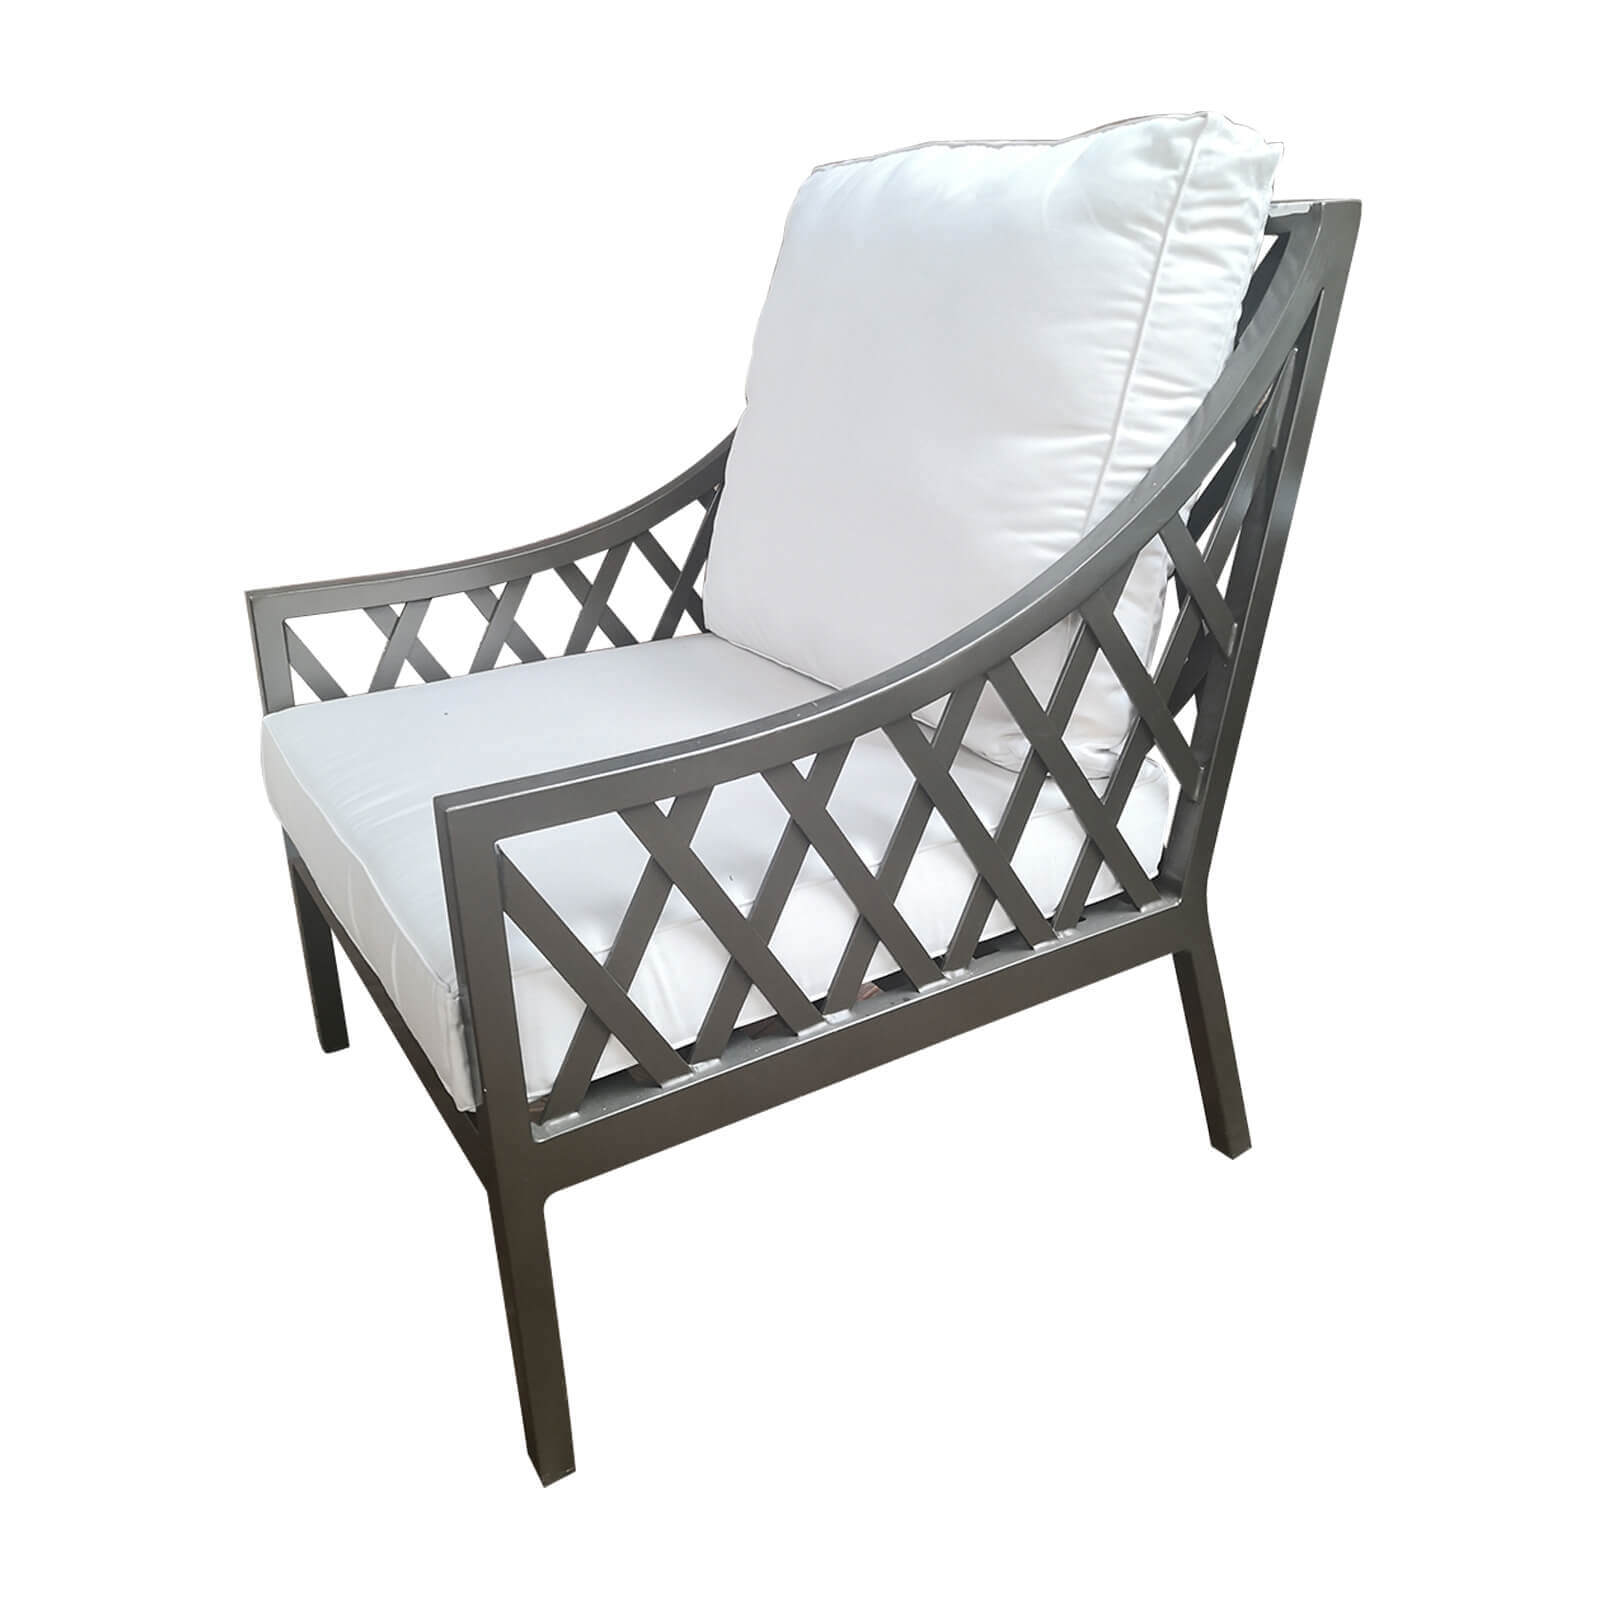 Two Design Lovers classic outdoor armchair